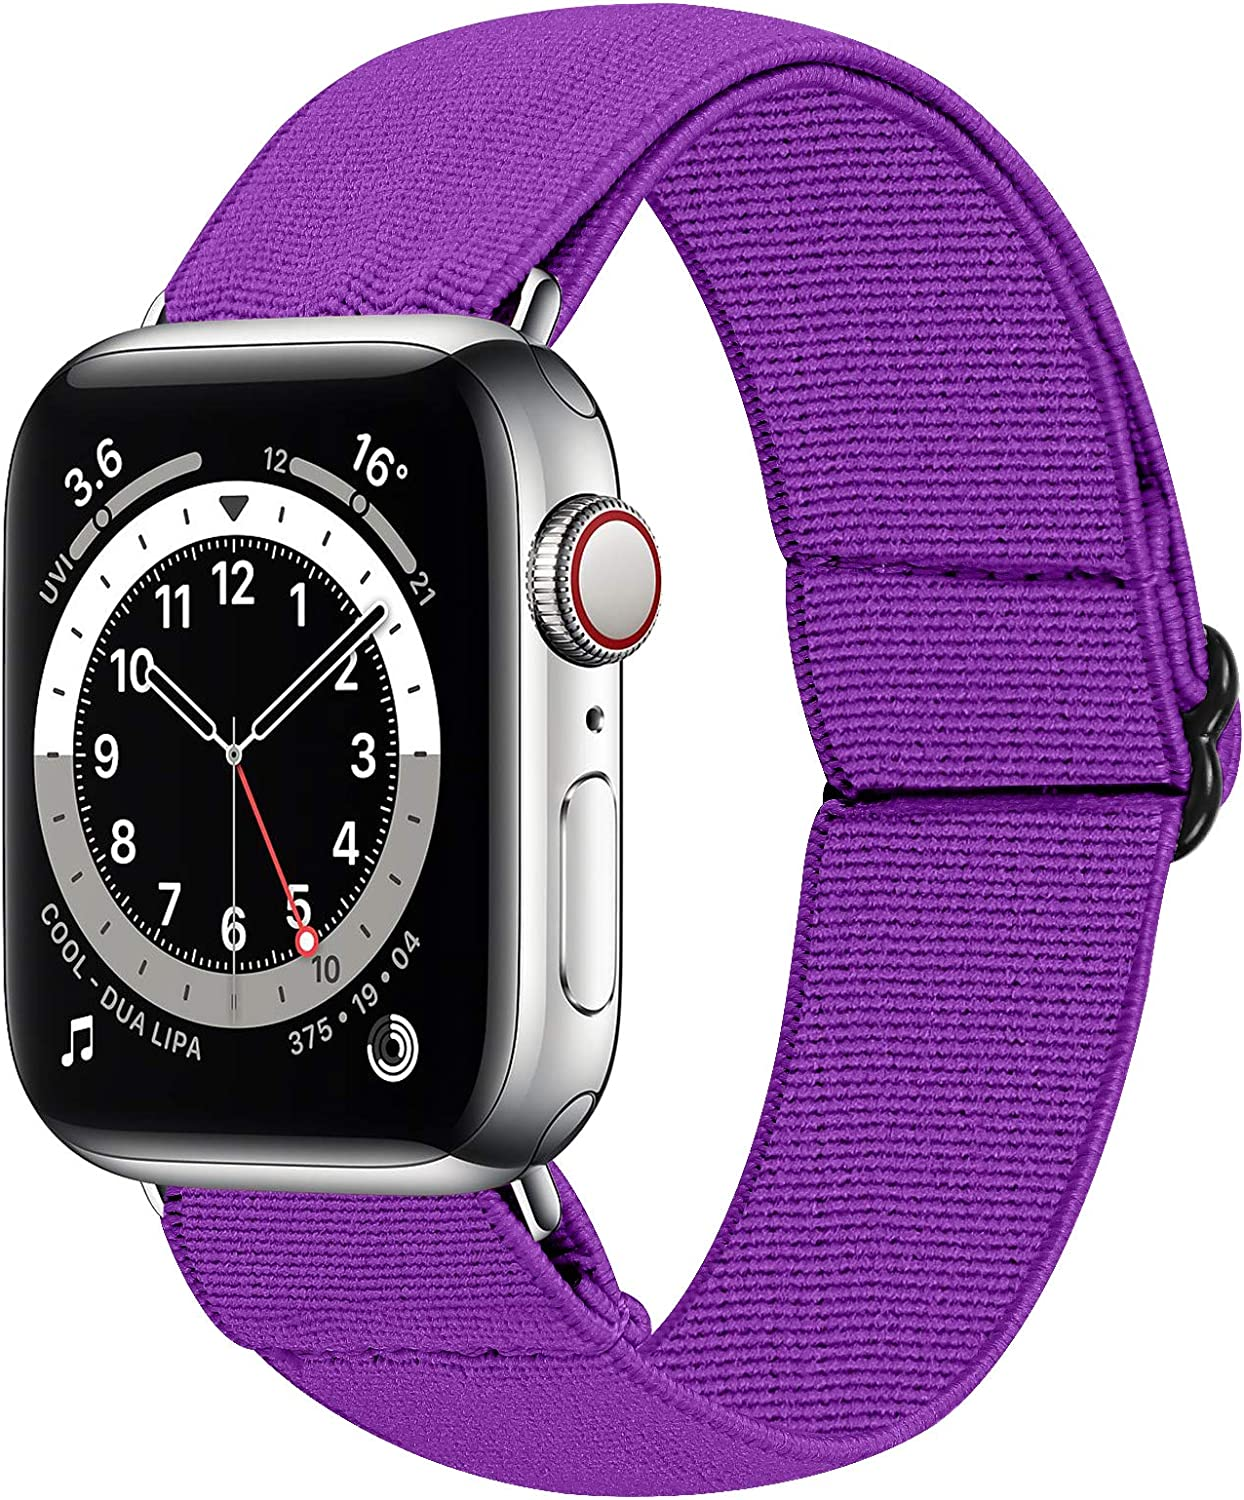 HAYUL Stretchy Nylon Bands Compatible with Apple Watch Bands 38mm 40mm 42mm 44mm, Adjustable Sport Elastics Women Men Wristband for iWatch Series 6/5/4/3/2/1 SE (Purple, 42/44mm)